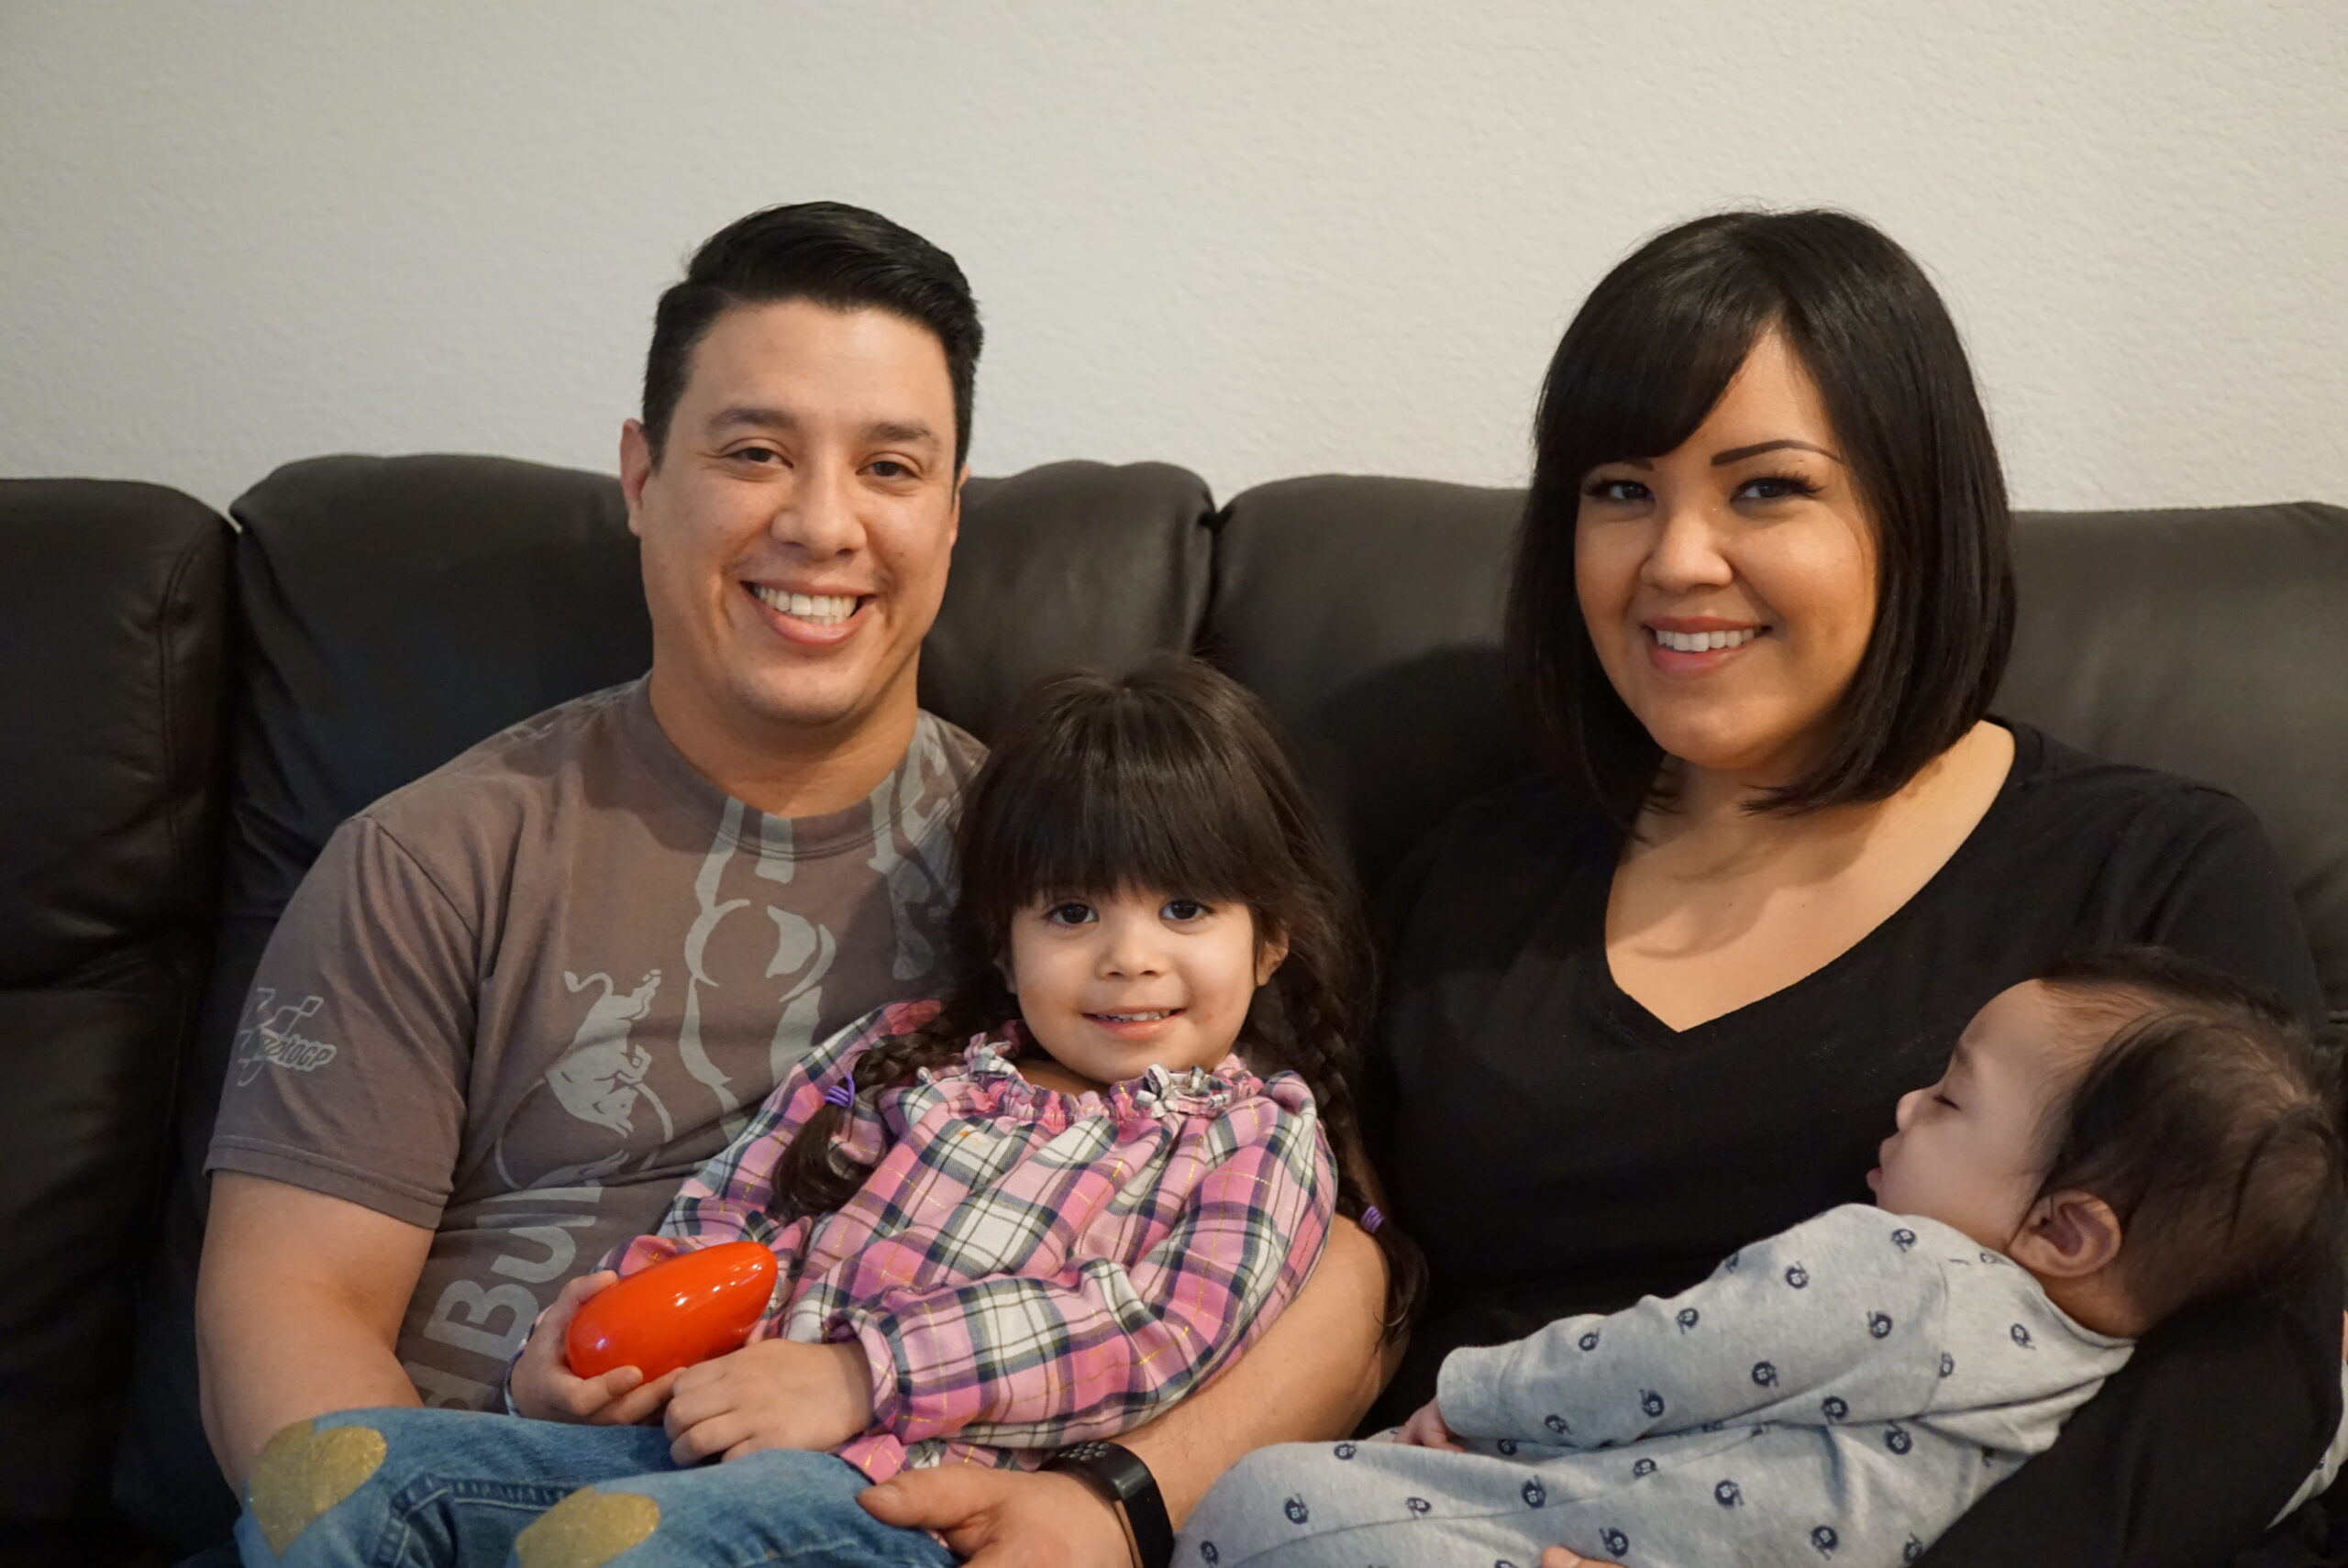 Jose with his wife Marcella and their children at home in Santa Clara